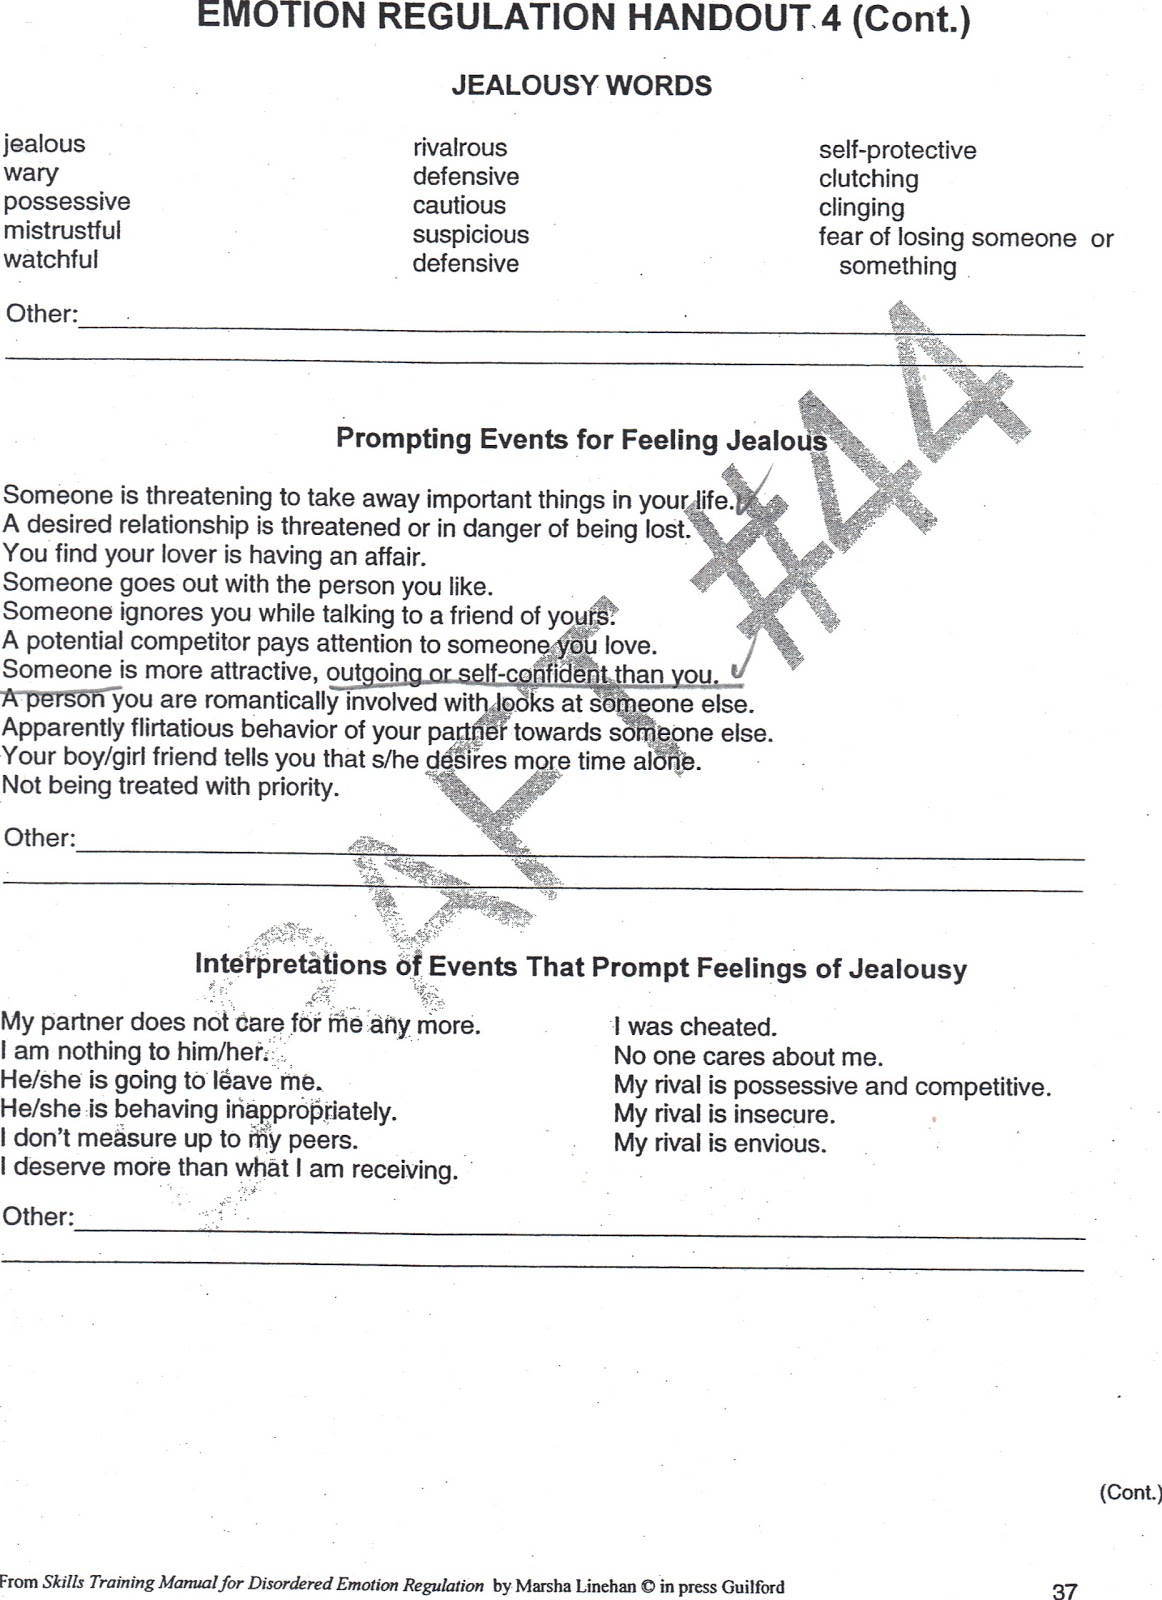 Free Worksheet Emotion Regulation Worksheet healing from bpd borderline personality disorder blog jealousy the new girl at work decided that it would be nice to celebrate one of our co workers birthdays in all years ive worked at